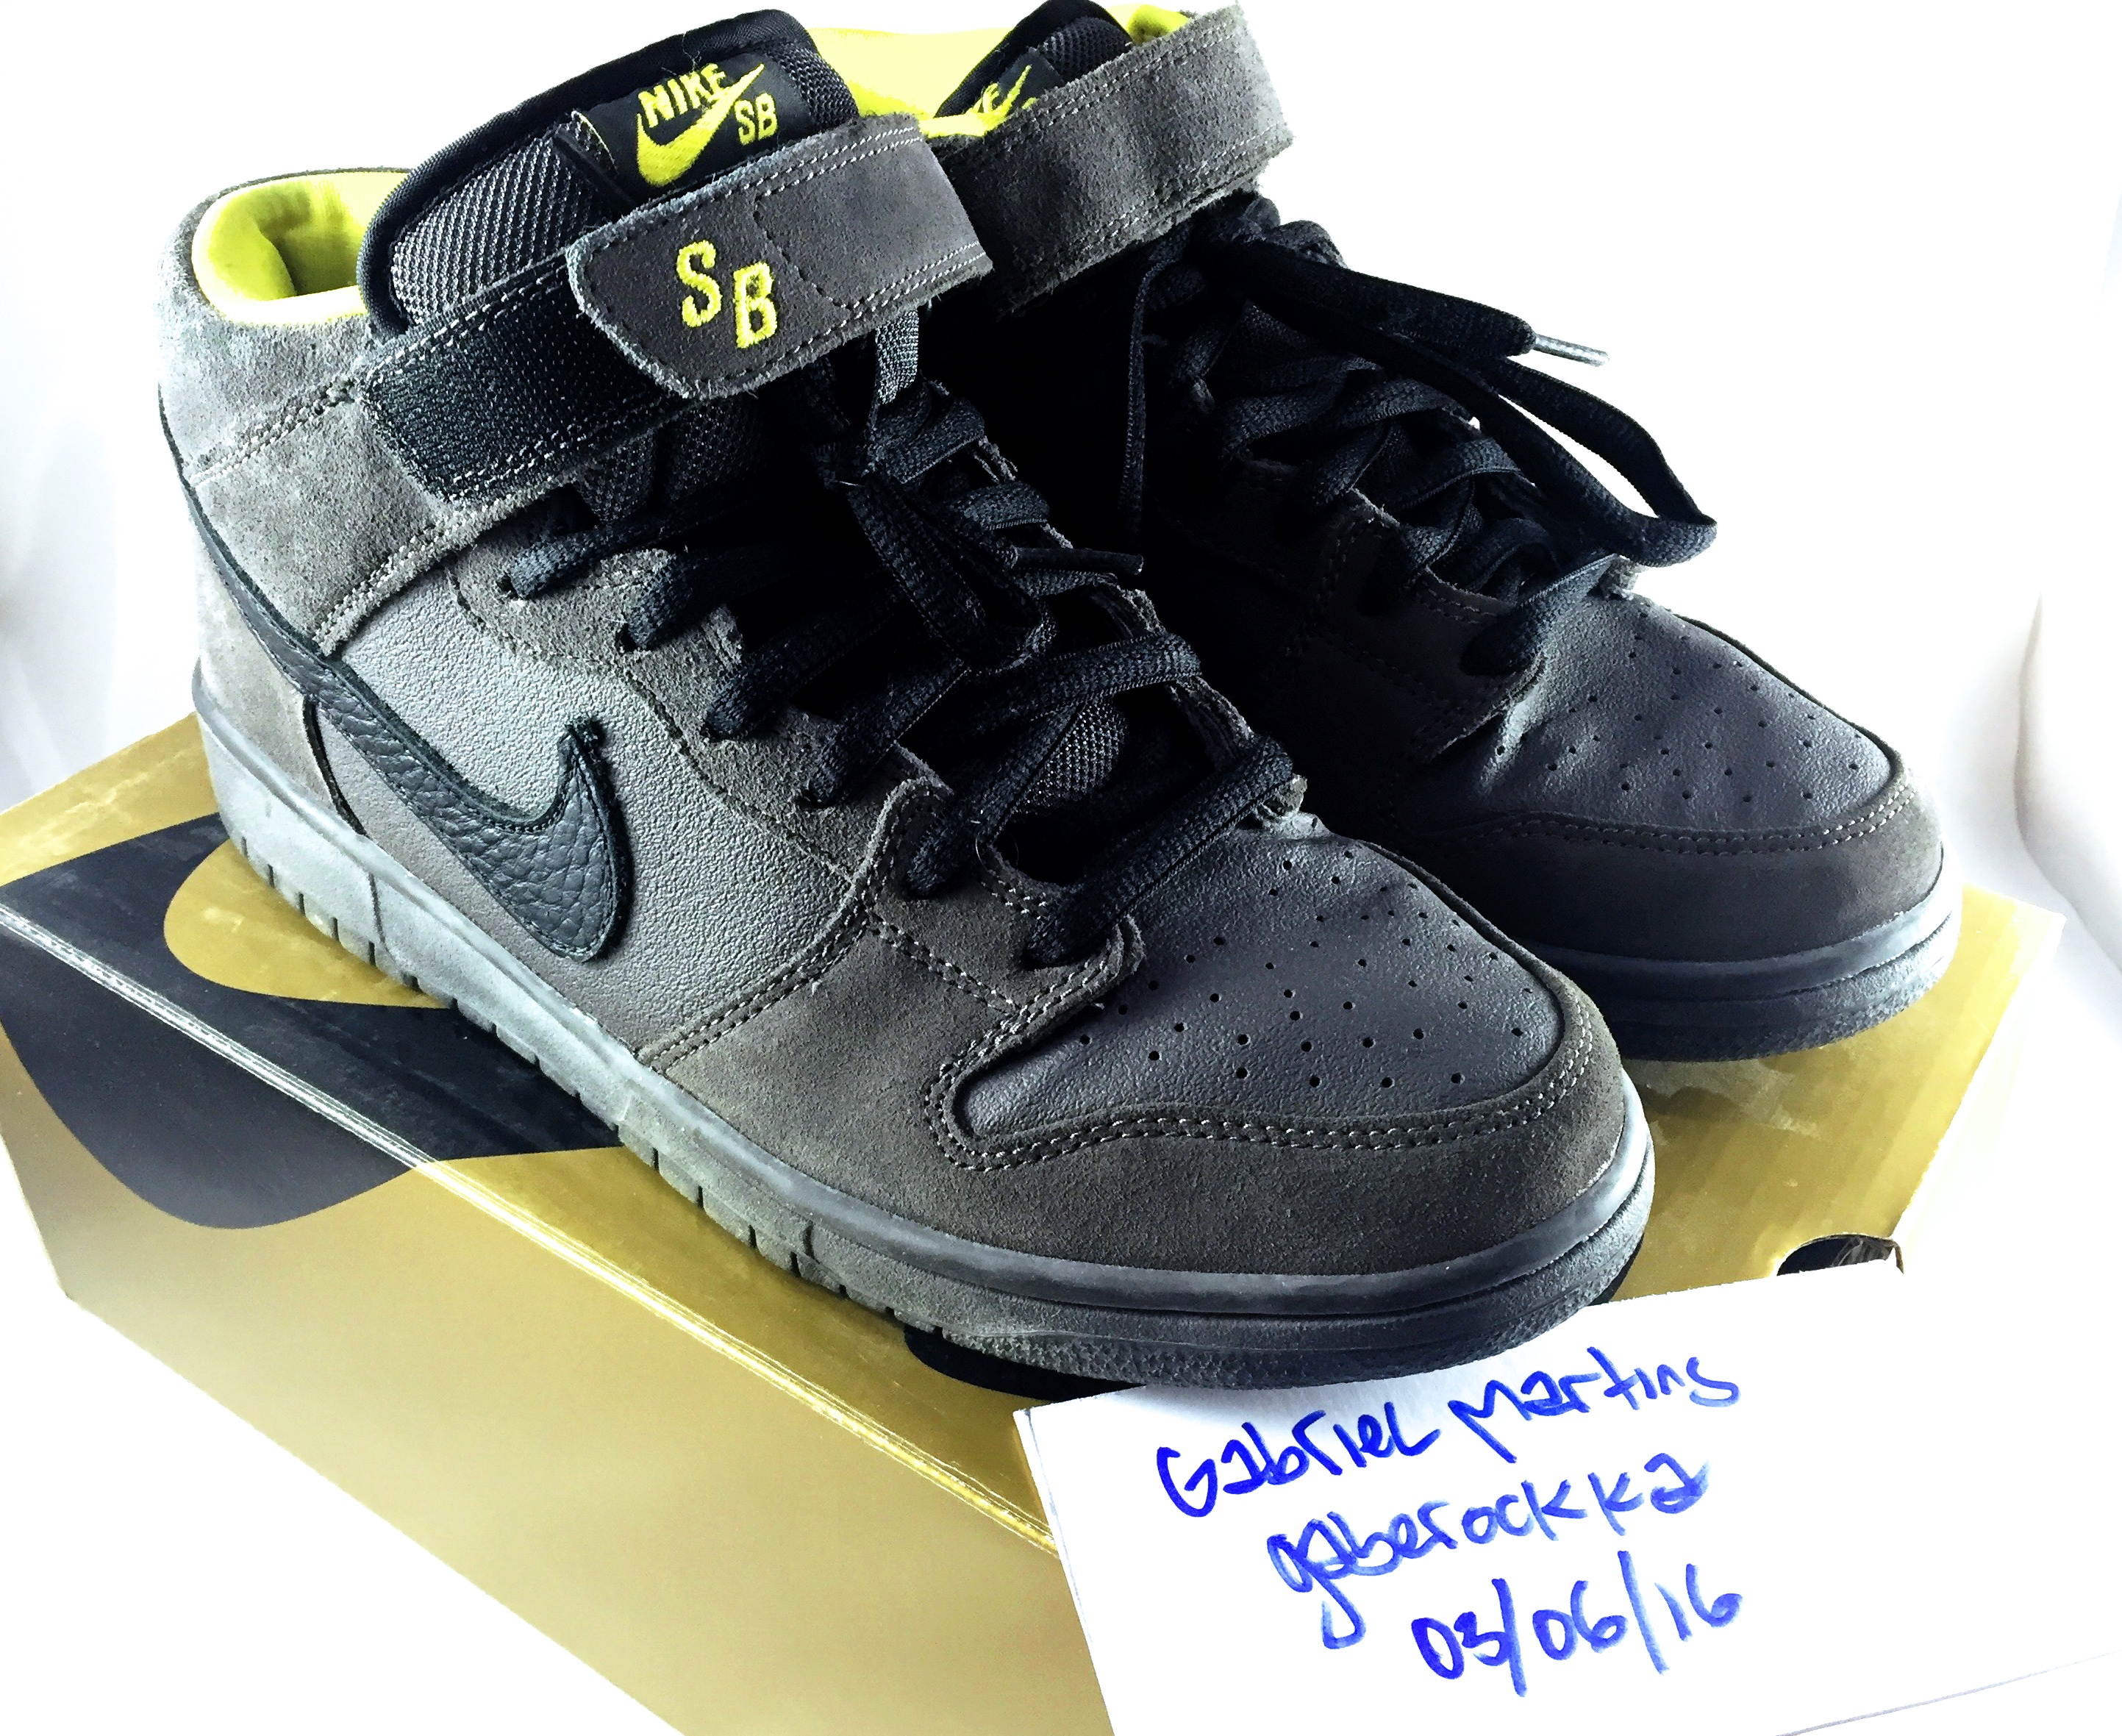 784aac62581a Nike Nike SB Dunk Mid  Batman  Size 9.5 - Low-Top Sneakers for Sale ...